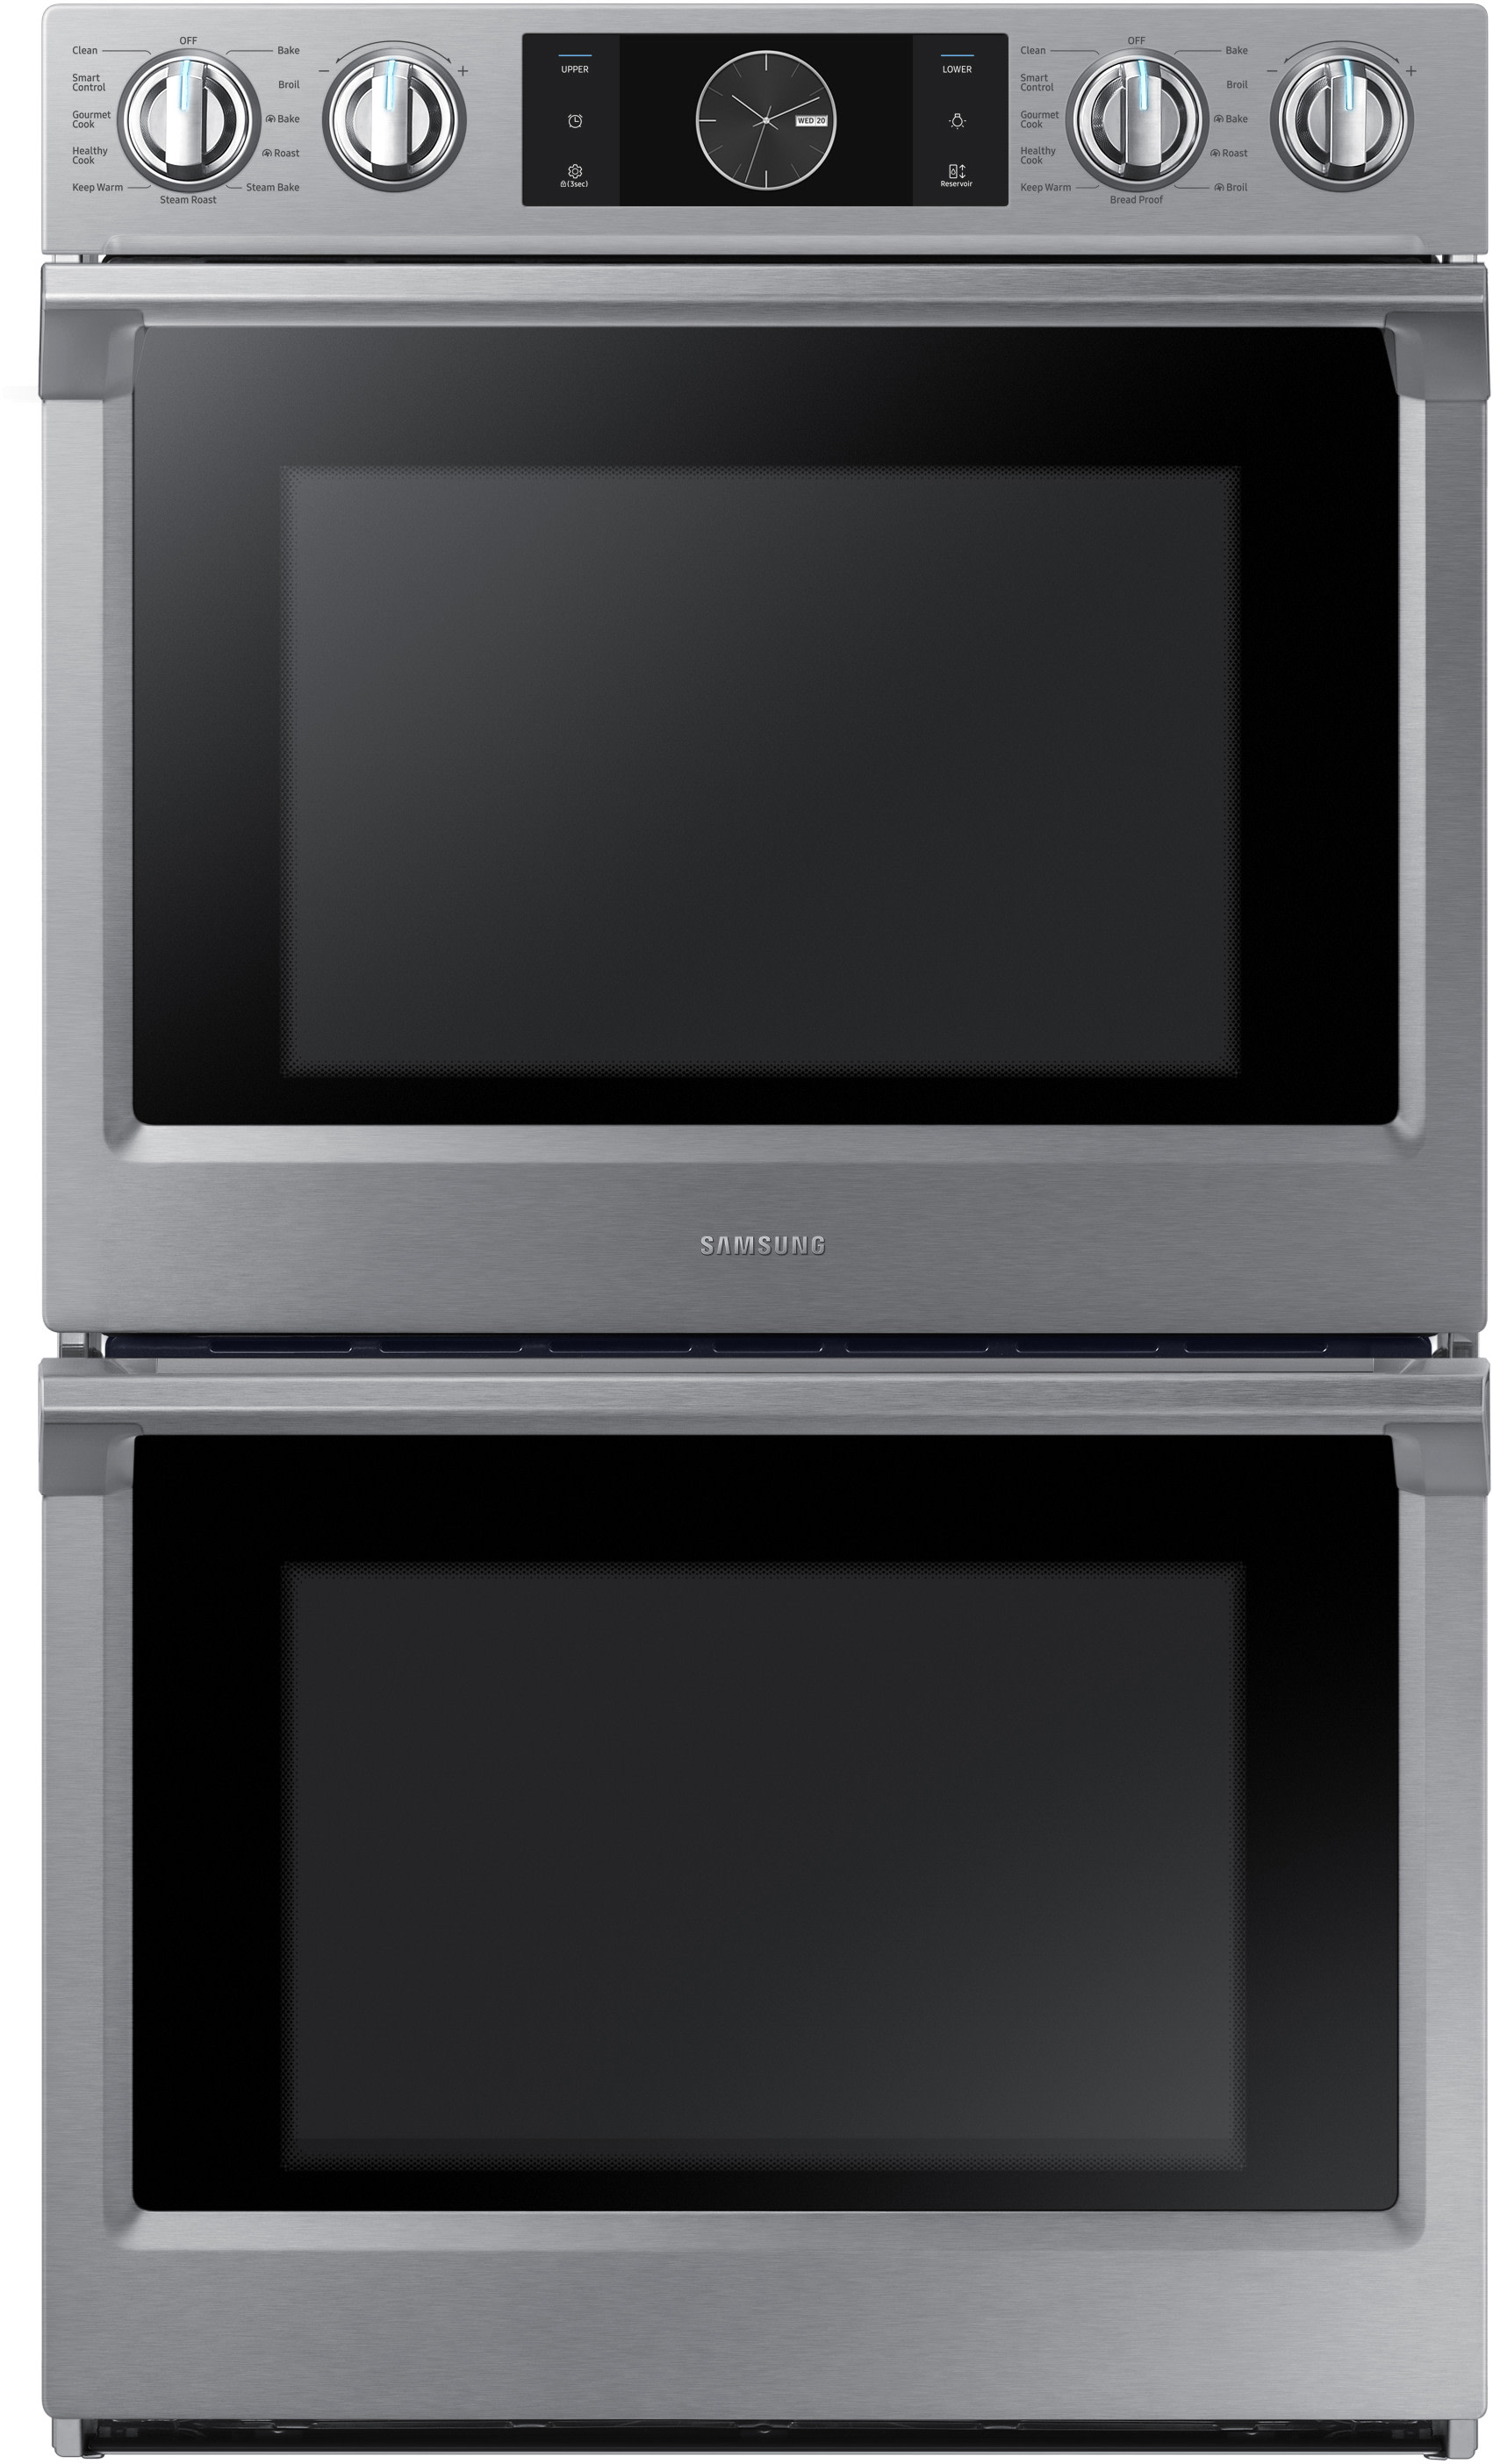 Samsung Nv51k7770ds 30 Inch Electric Double Wall Oven With 51 Cu Wiring Diagram For Dacor Ft Capacity Steam Cook Flex Duo Smart Divider 3 Separate Temperature Zones